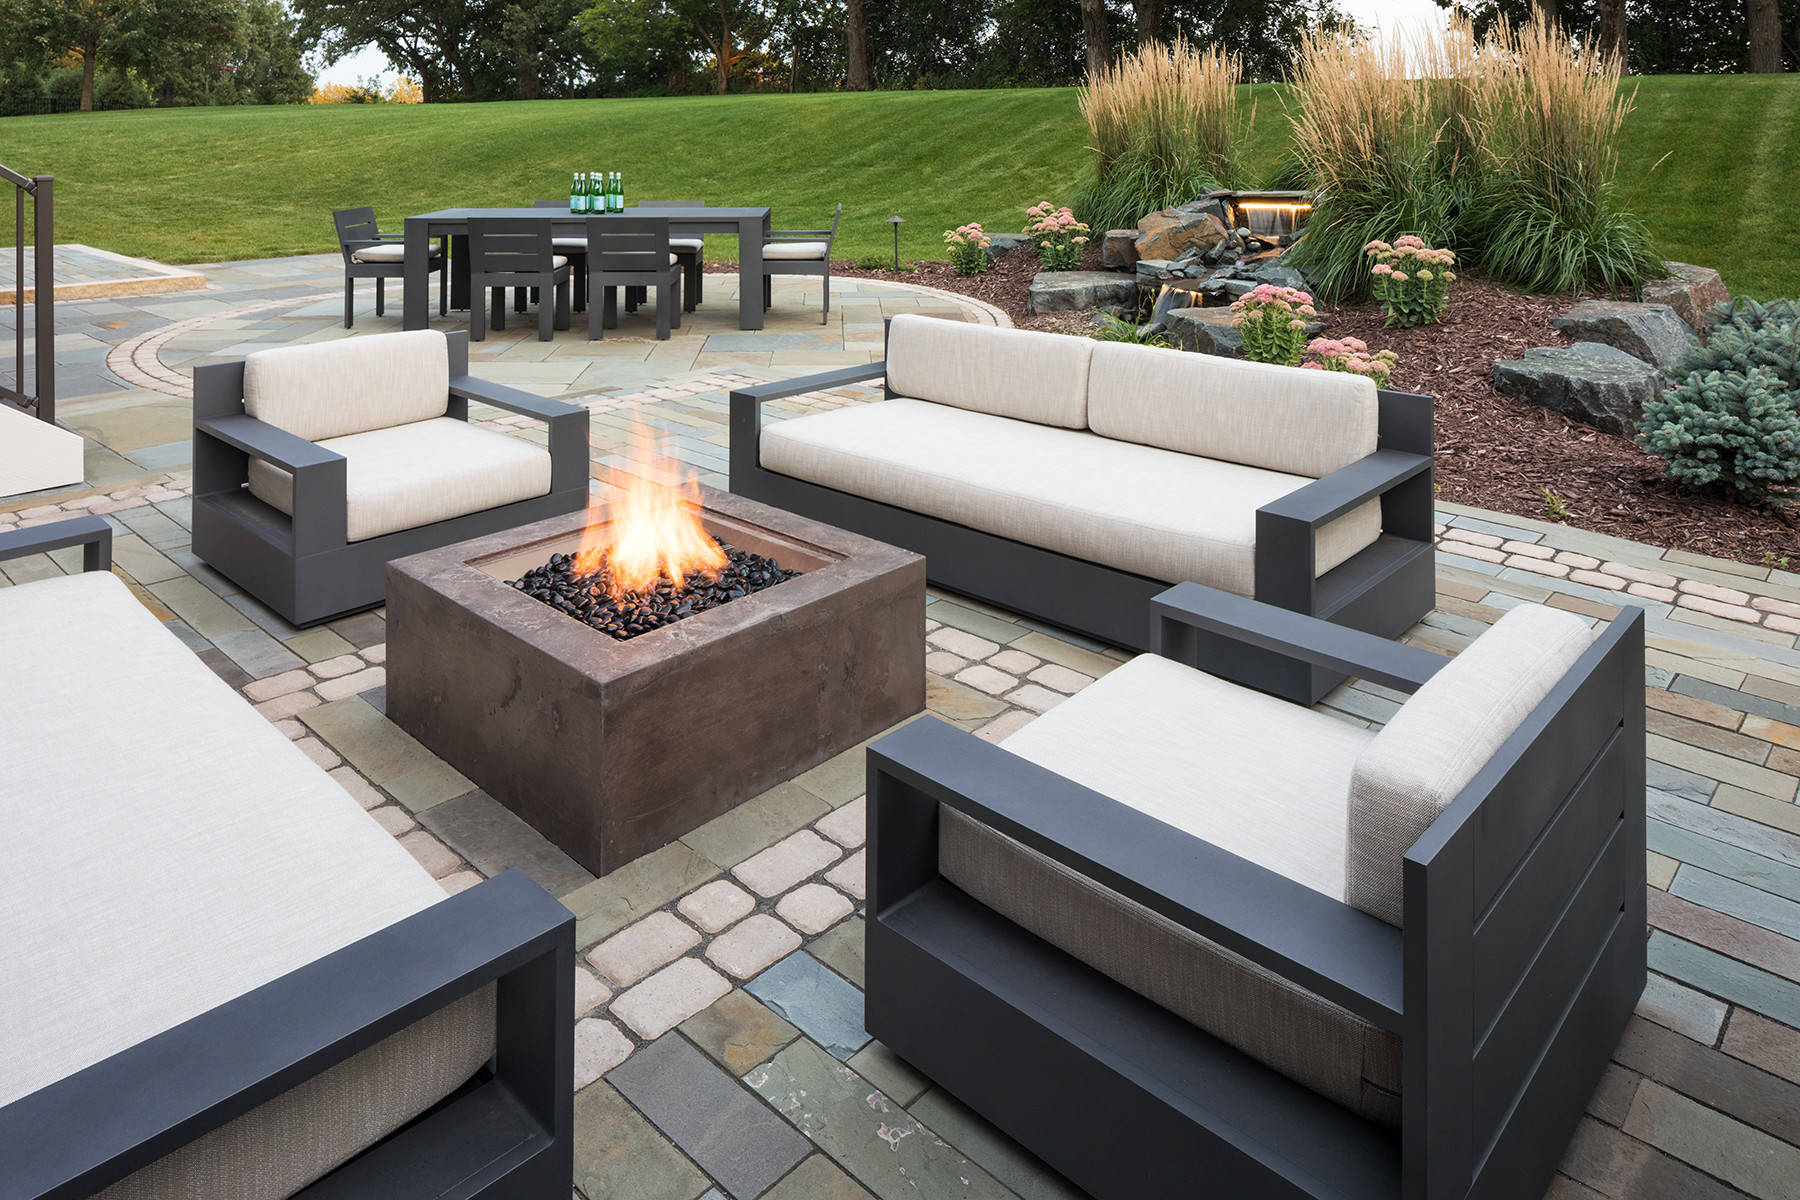 75 Beautiful Concrete Paver Patio With A Fire Pit Pictures Ideas March 2021 Houzz